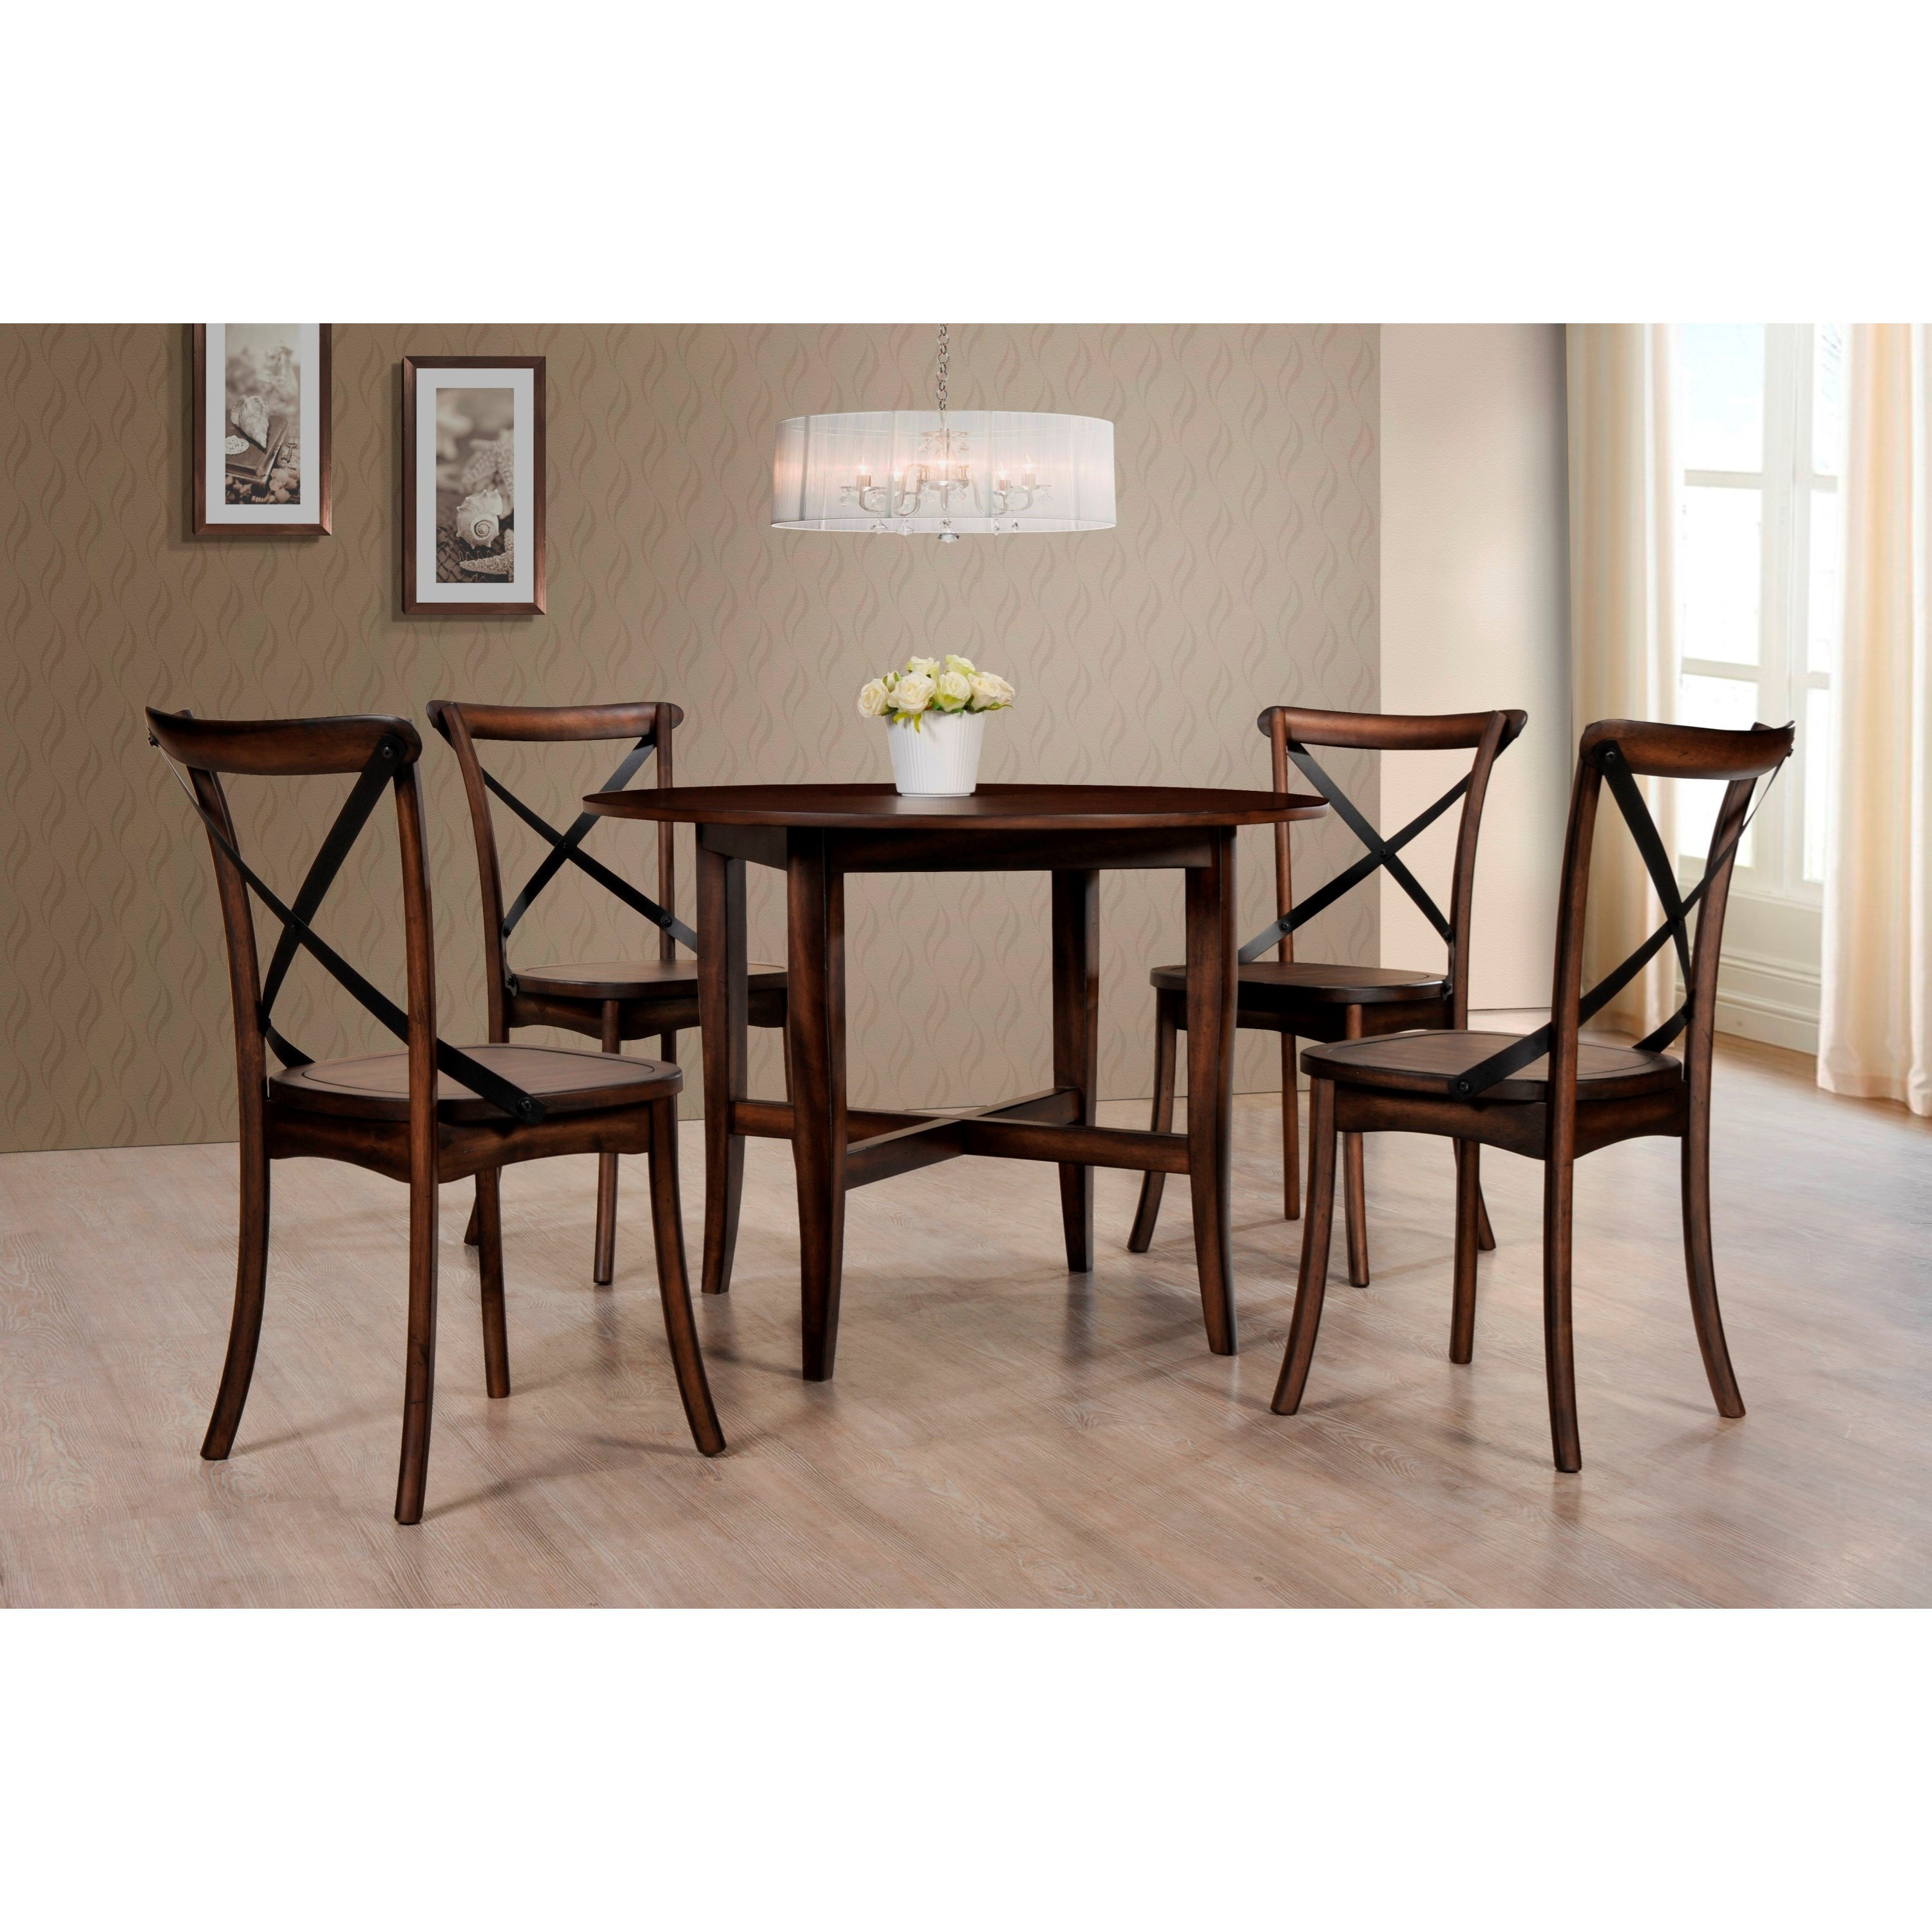 Crown Mark Farris Round Five Piece Dining Set - Item Number: 2285T-48+4x2285S